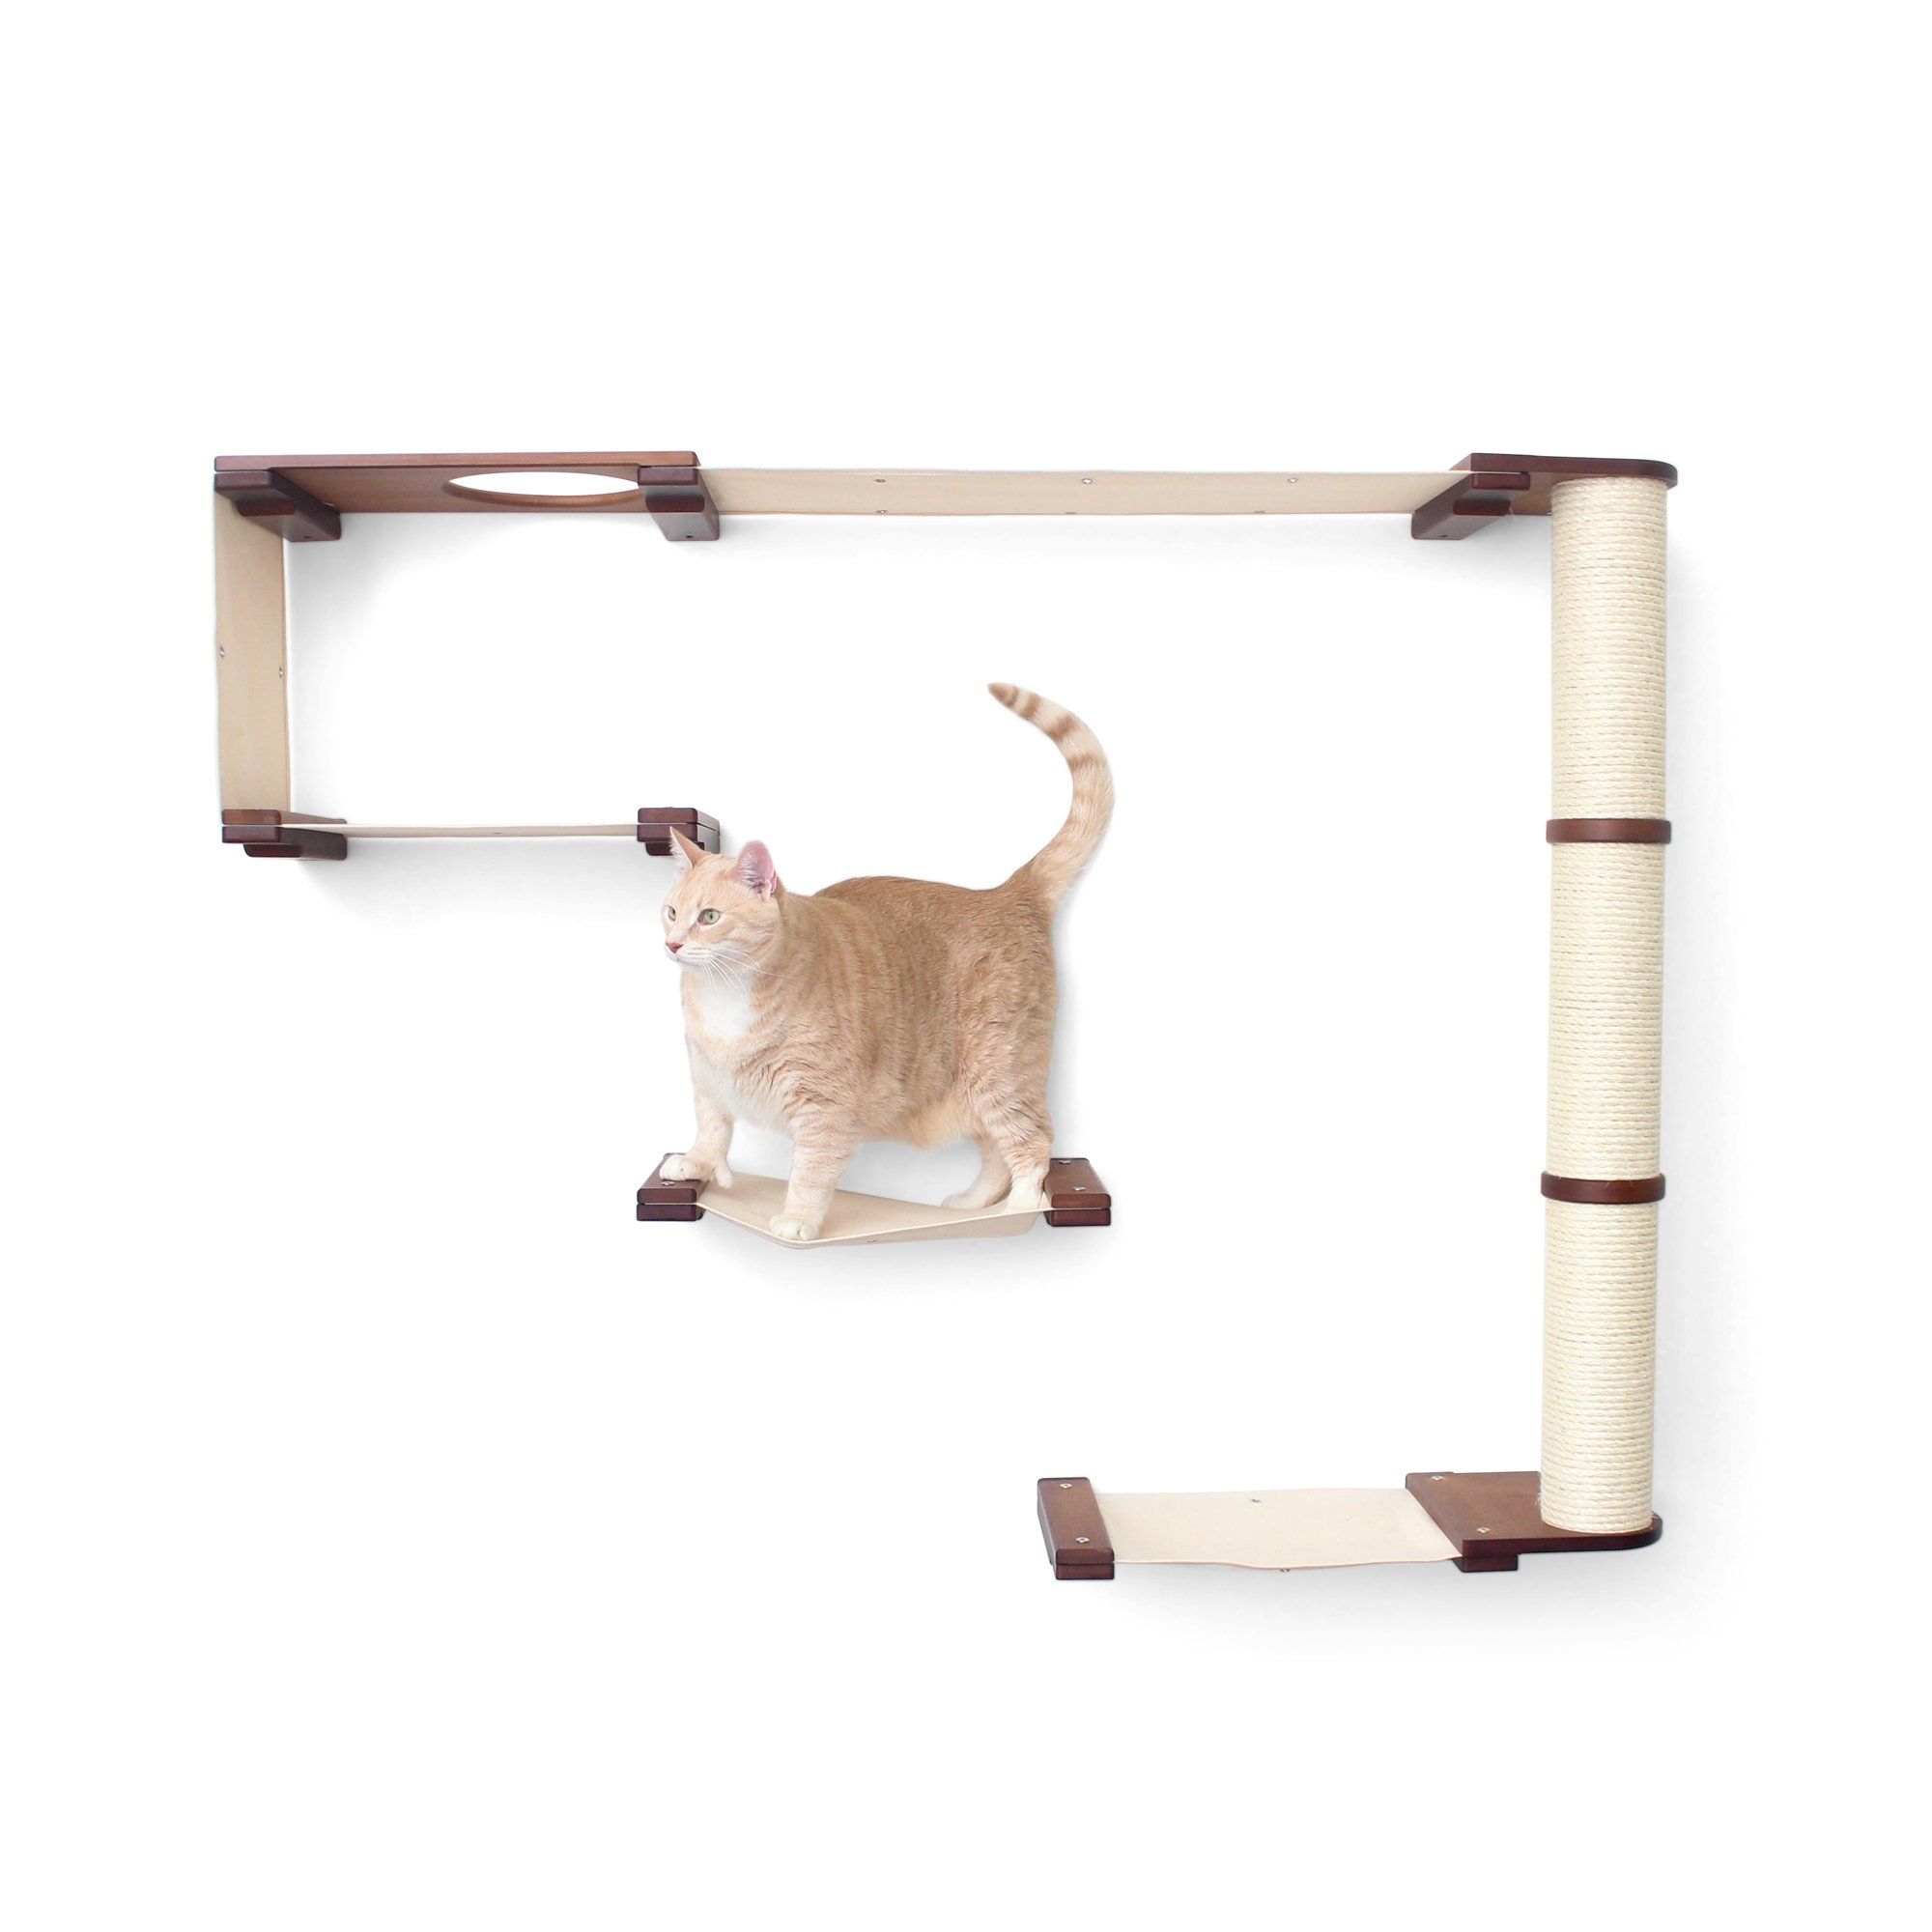 Catastrophicreations The Cat Mod Climb Track Hammocks With Sisal Pole For Cats In English Chestnut, 50 In W X 69 In H, 42 Lb